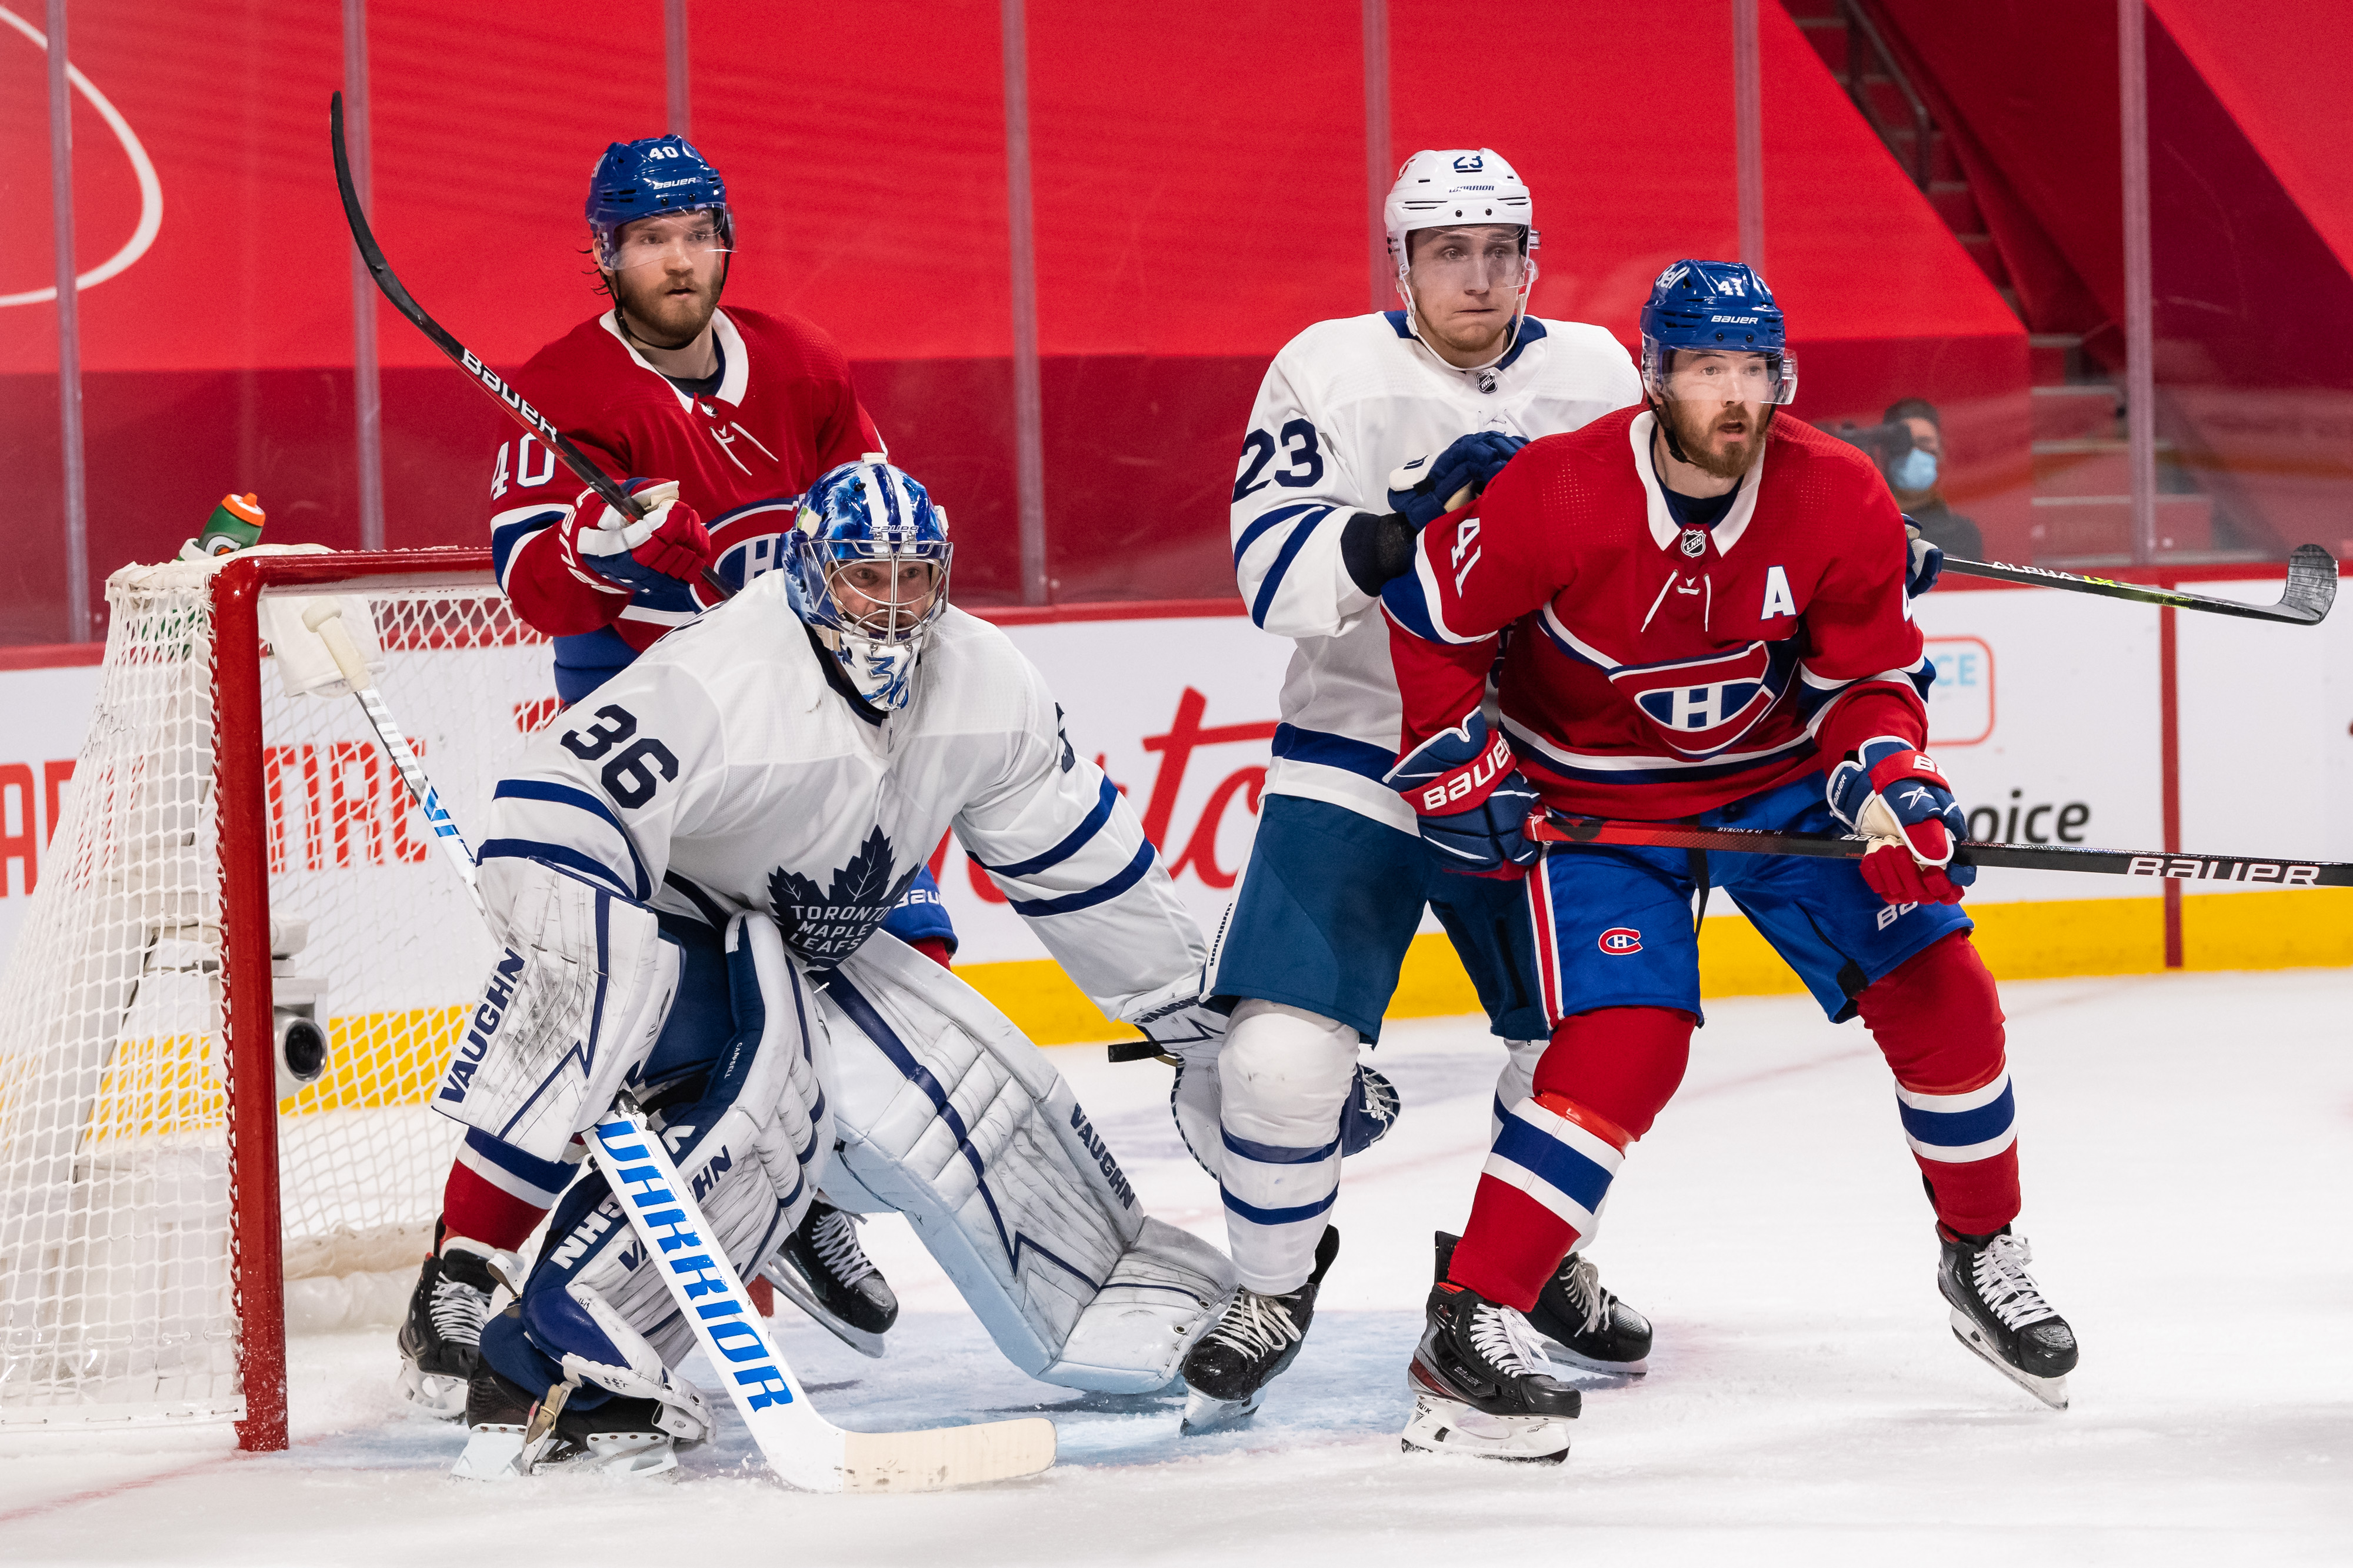 NHL: MAY 25 Stanley Cup Playoffs First Round - Maple Leafs at Canadiens